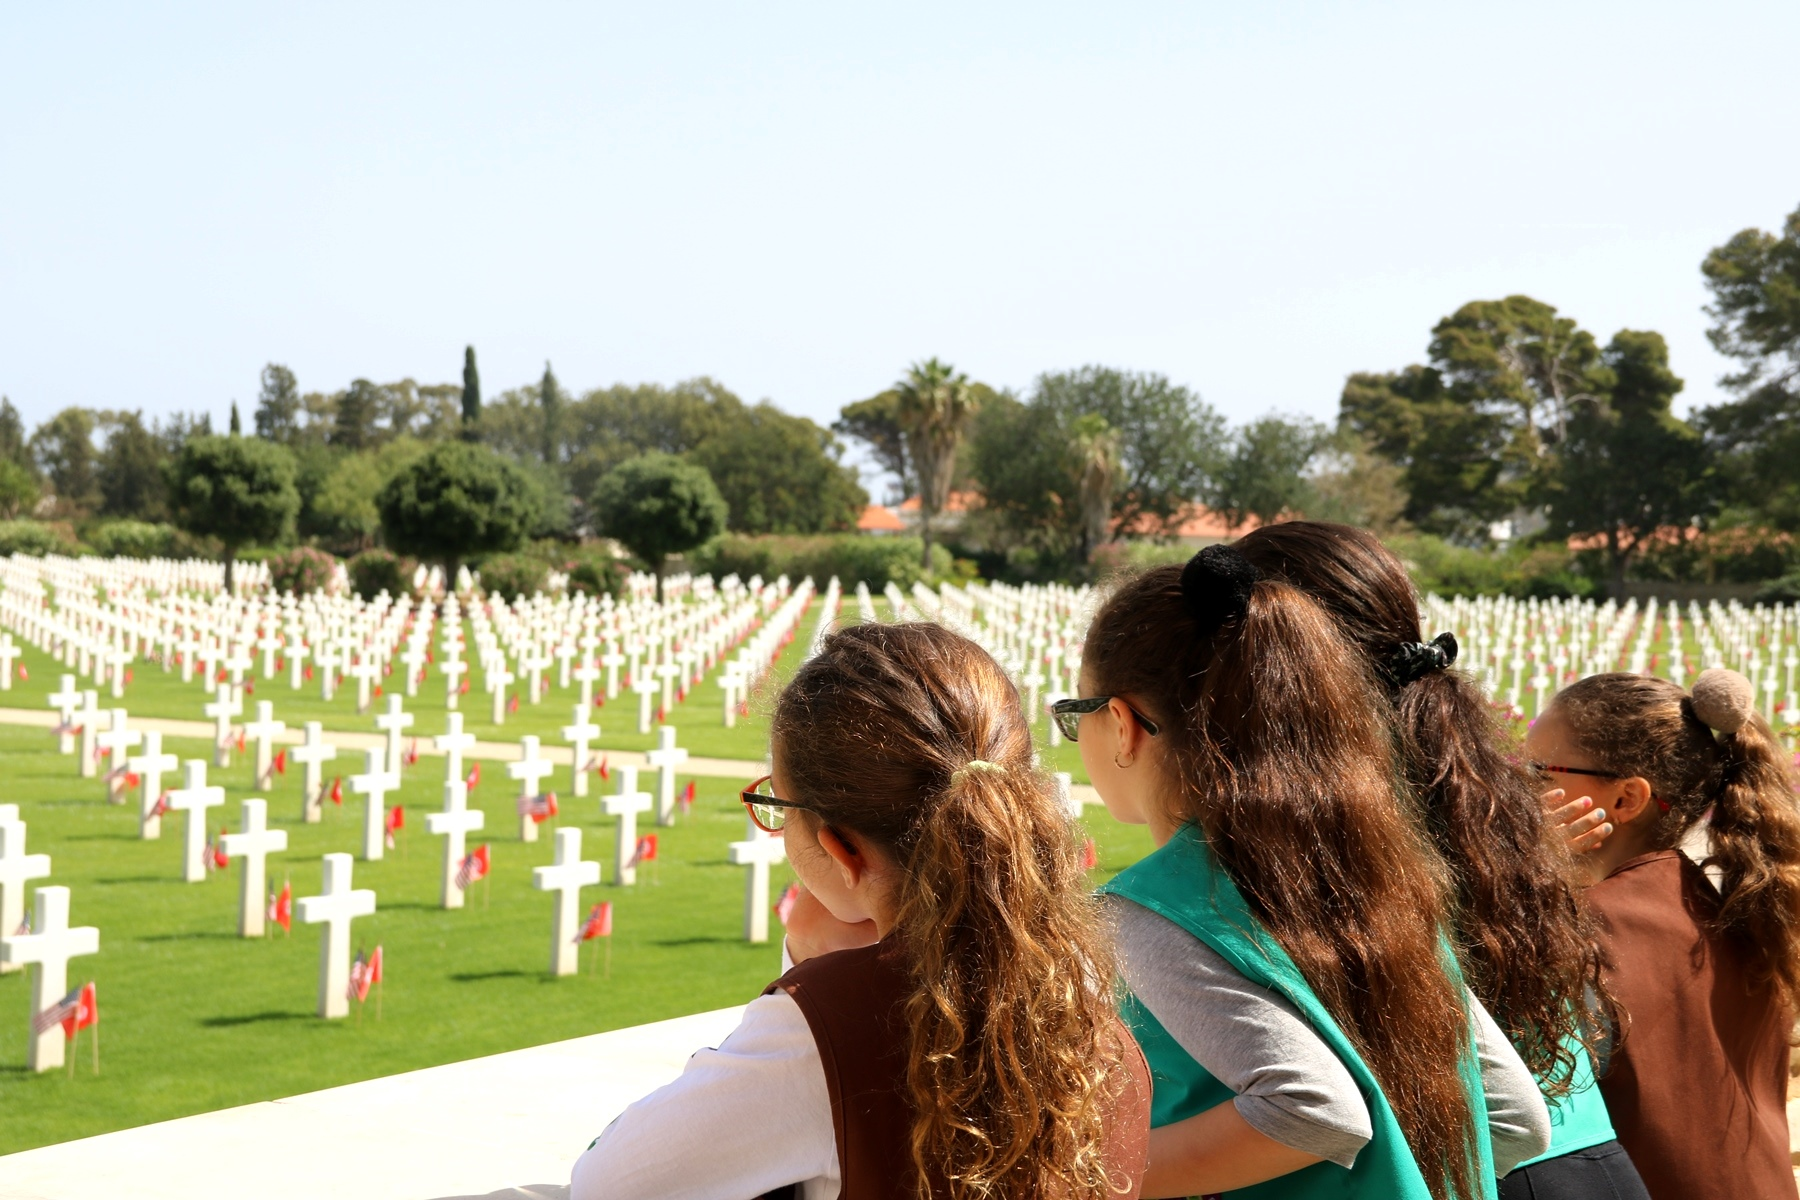 Girl Scouts from Brownie Troop 40502 and Junior Troop 40503 look out over the North Africa American Cemetery after the Memorial Day ceremony in Carthage, Tunisia, May 28, 2018. (Photo by Zouhaier SFAXI, U.S. Embassy Tunis)